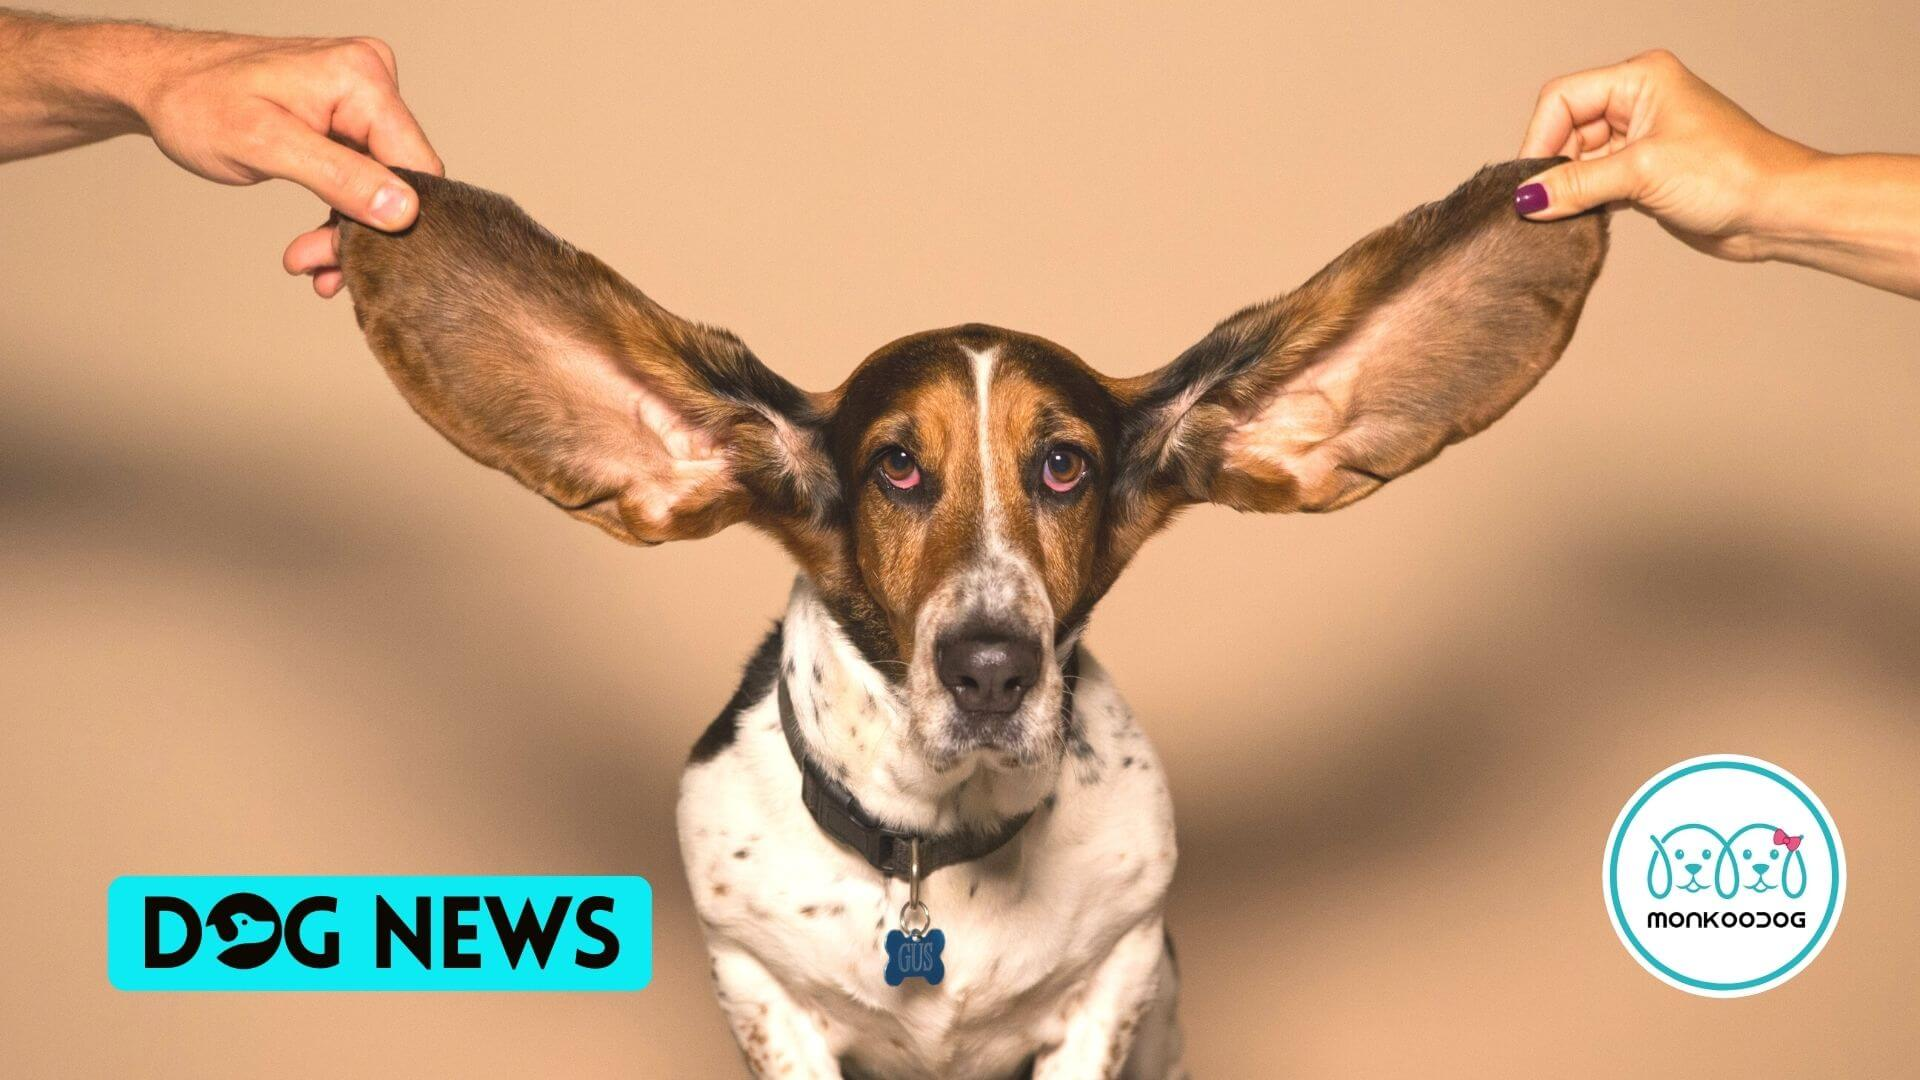 Scientists Reveal the Dog Breeds most Susceptible to Ear Infections. Basset Hounds, tops the list.